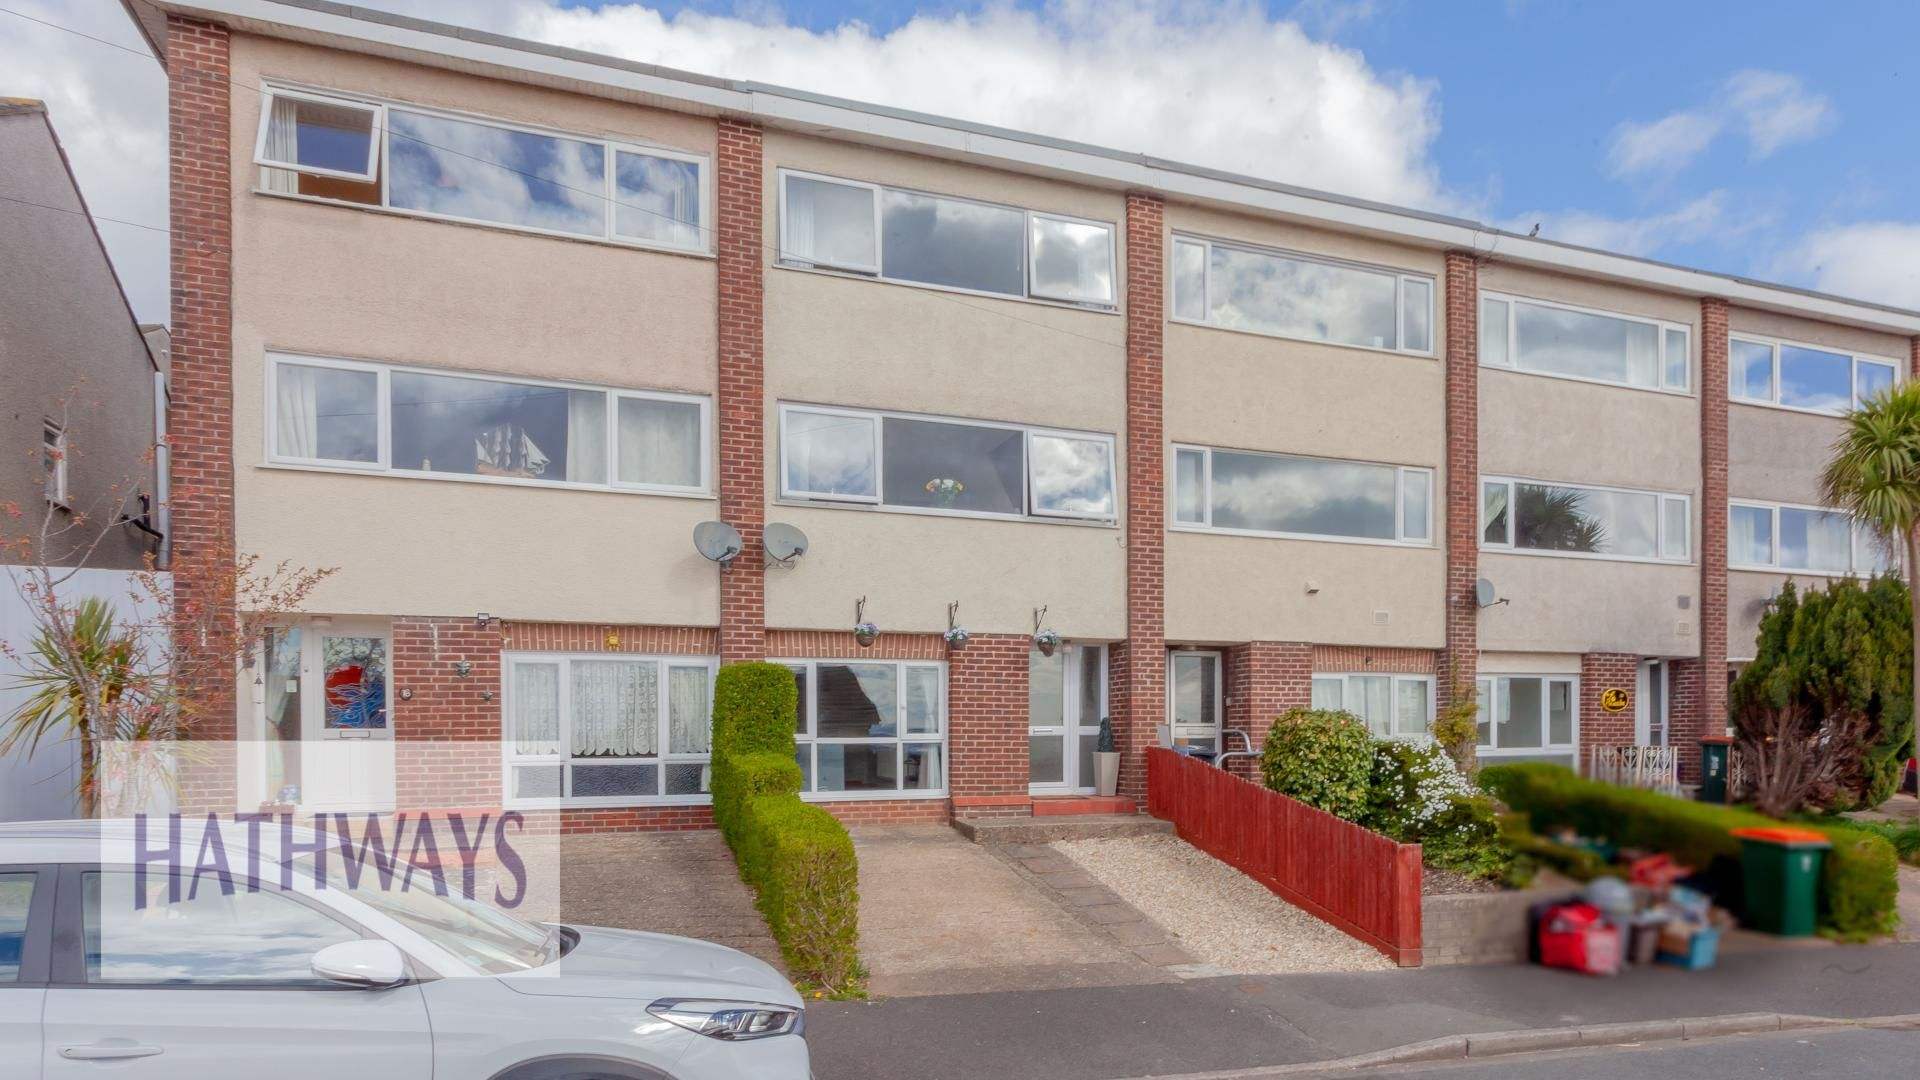 3 bed house for sale in Walden Grange Close, NP19